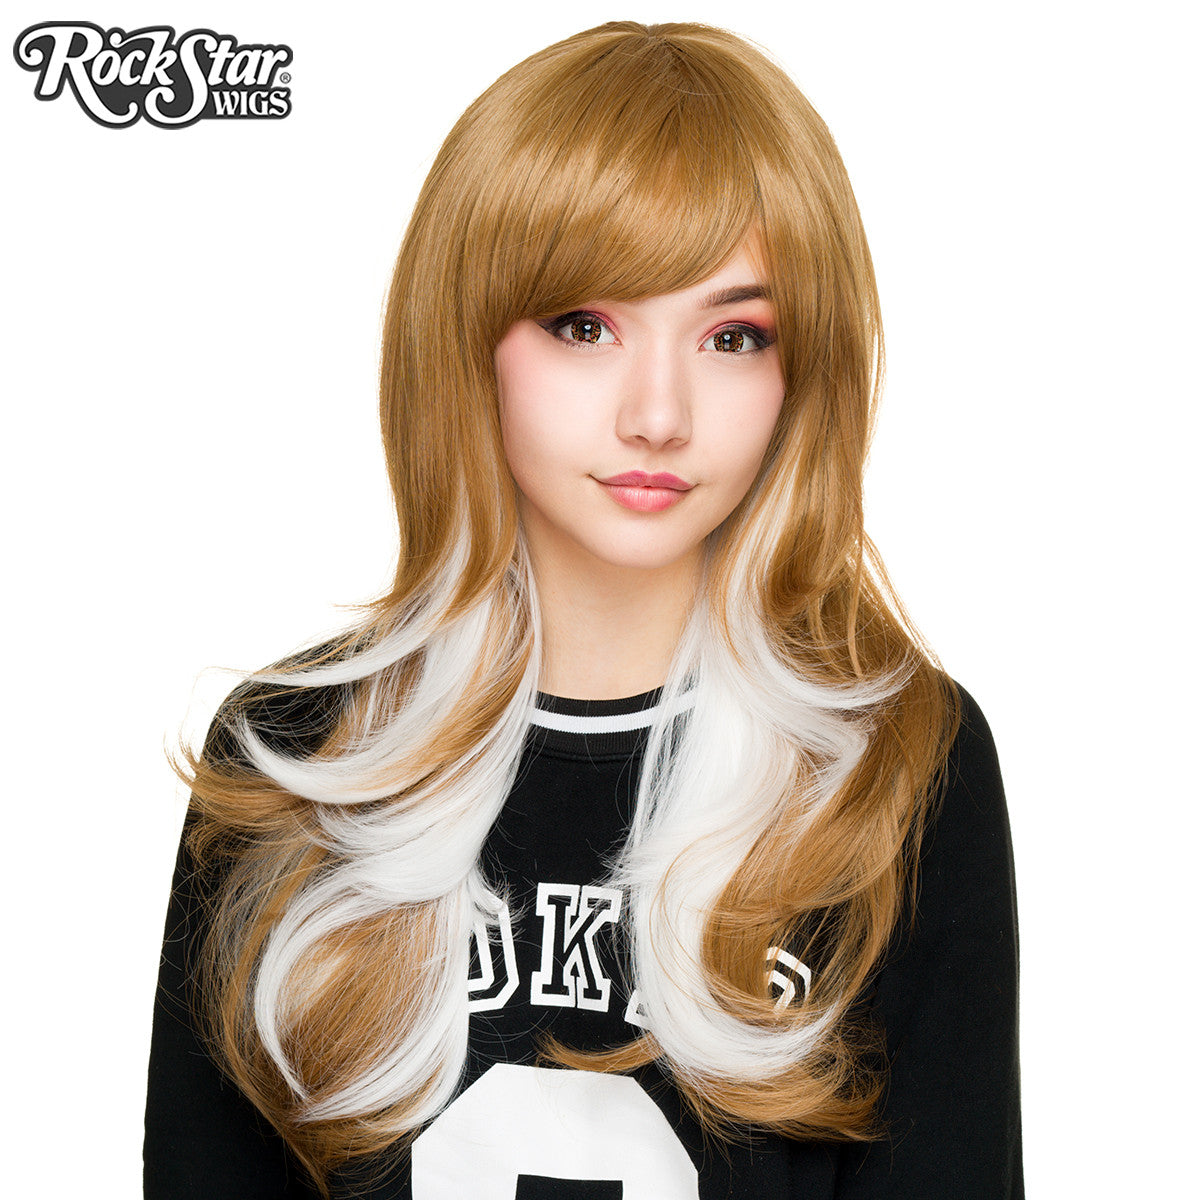 RockStar Wigs® <br> Downtown Girl™ Collection - Light Brown & White- 00154